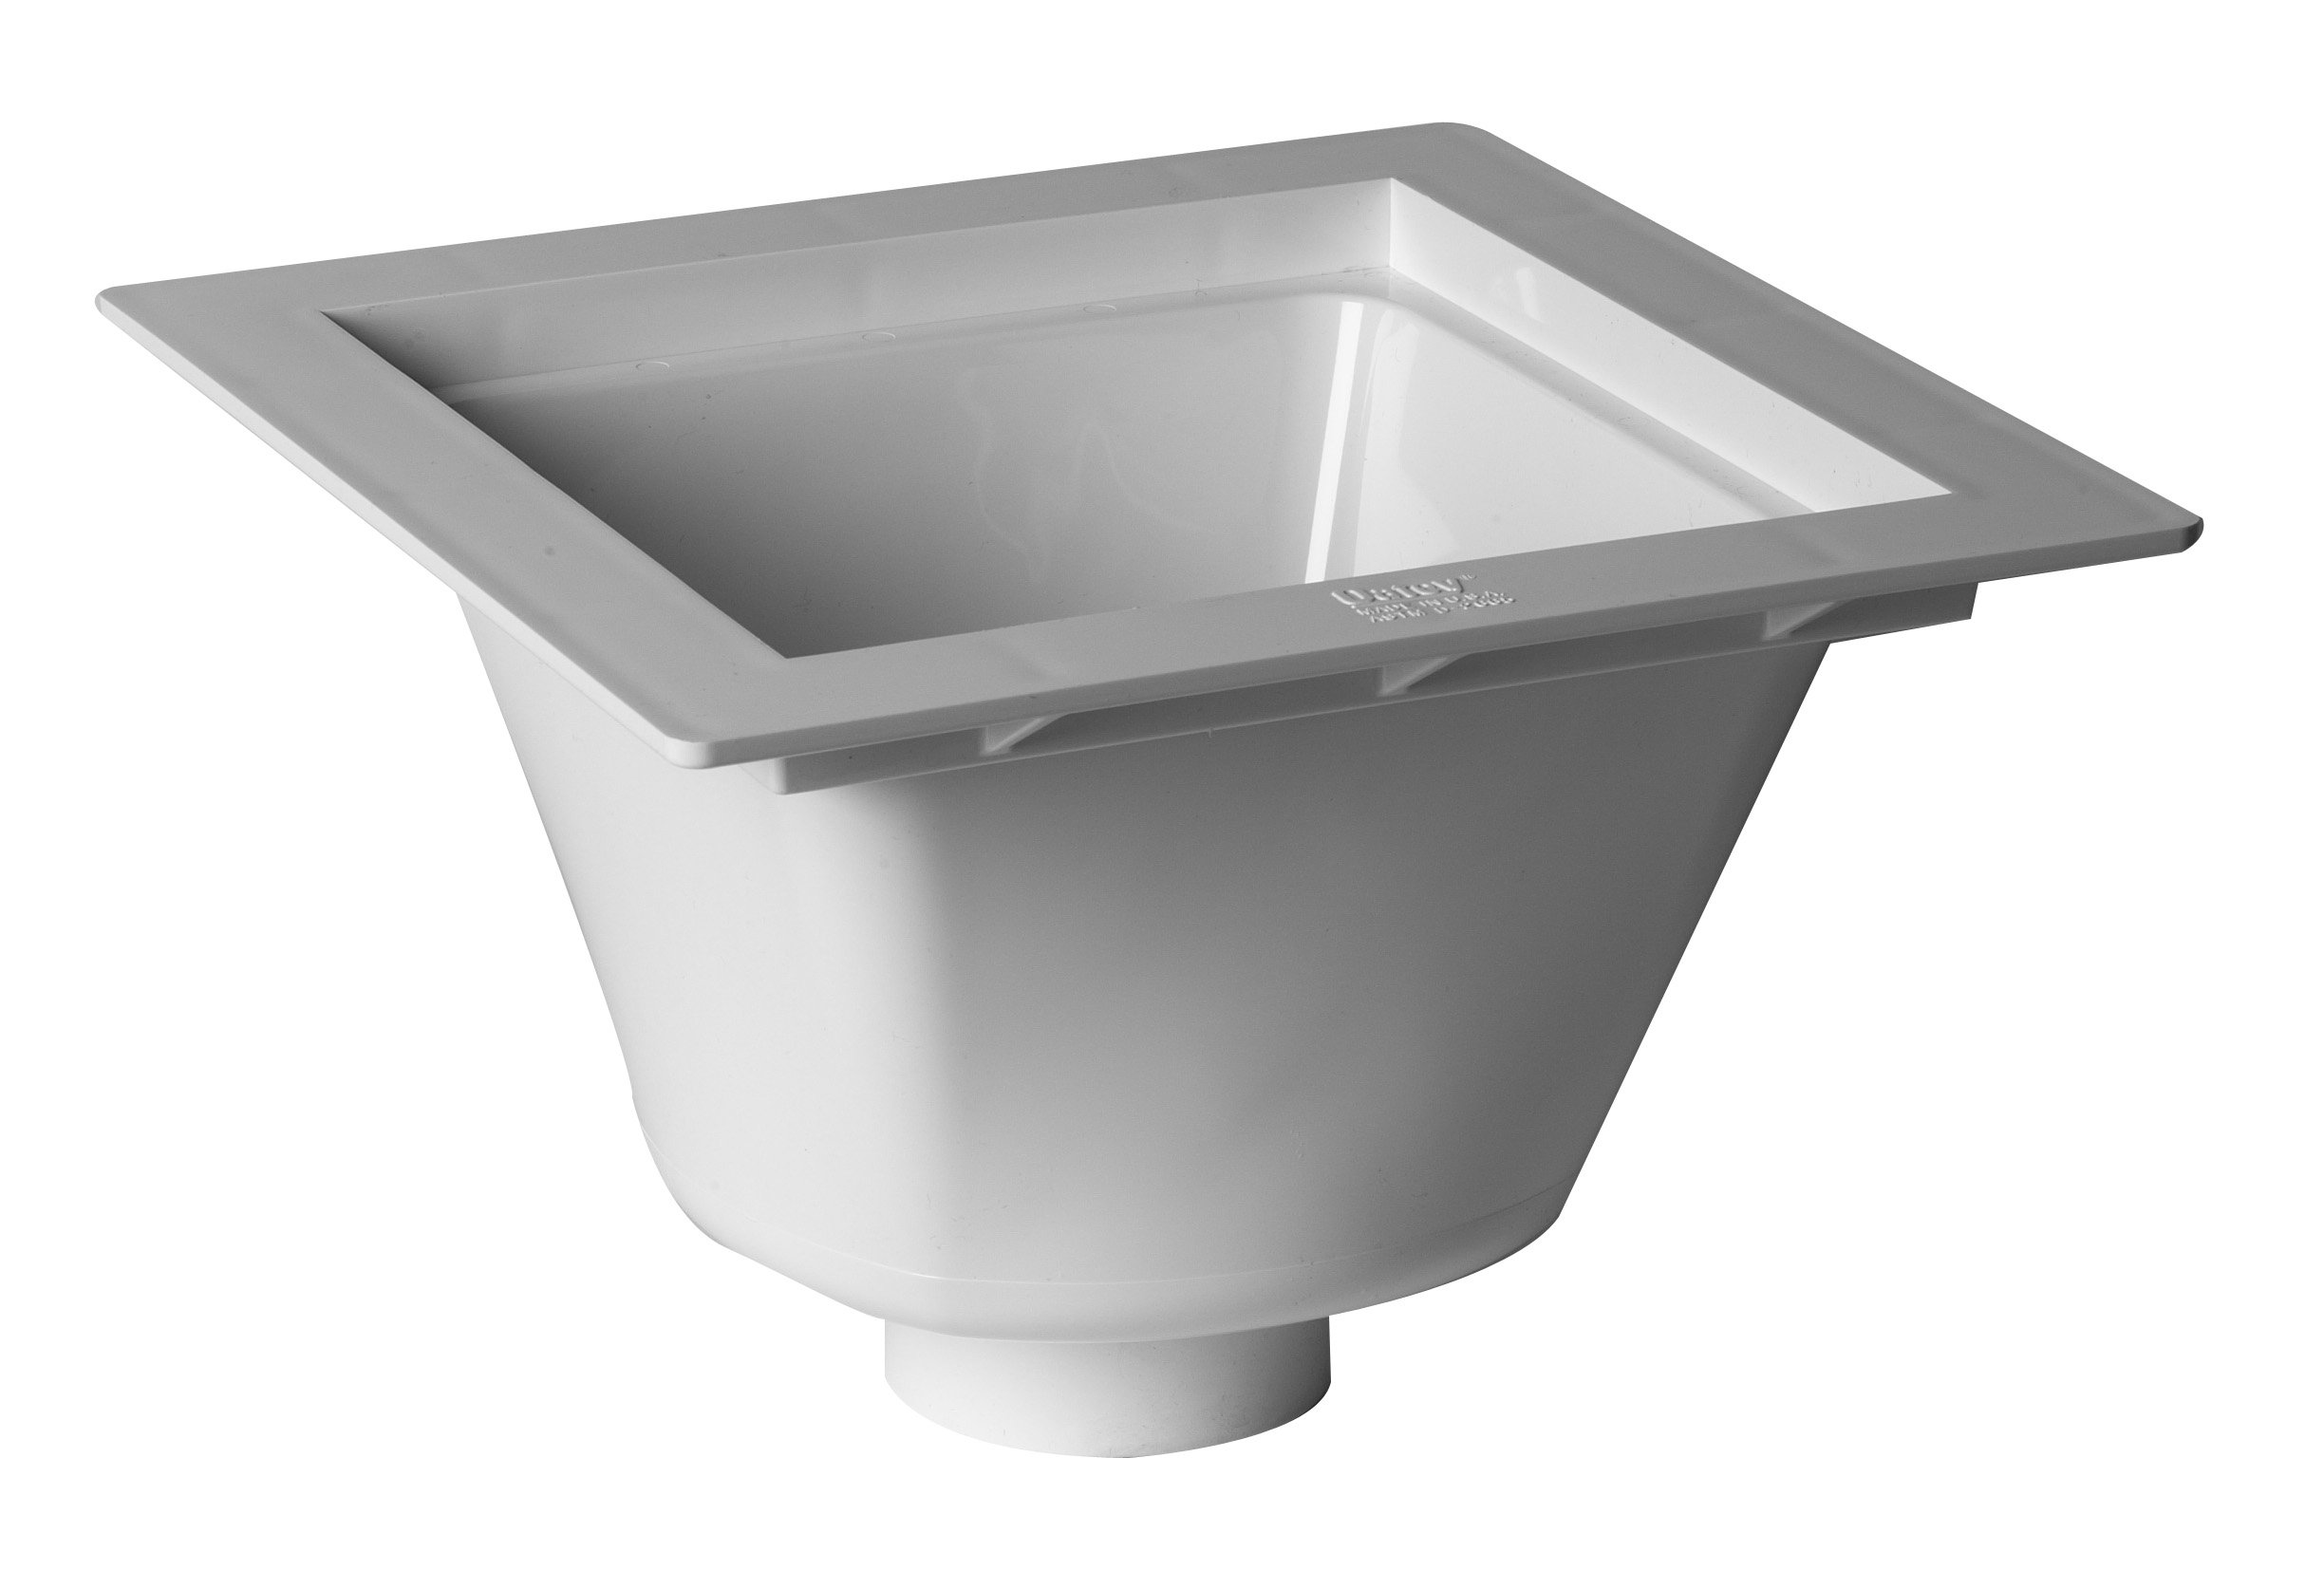 Oatey 42721 Floor-Mounted Utility Sink with 3-Inch Socket by Oatey